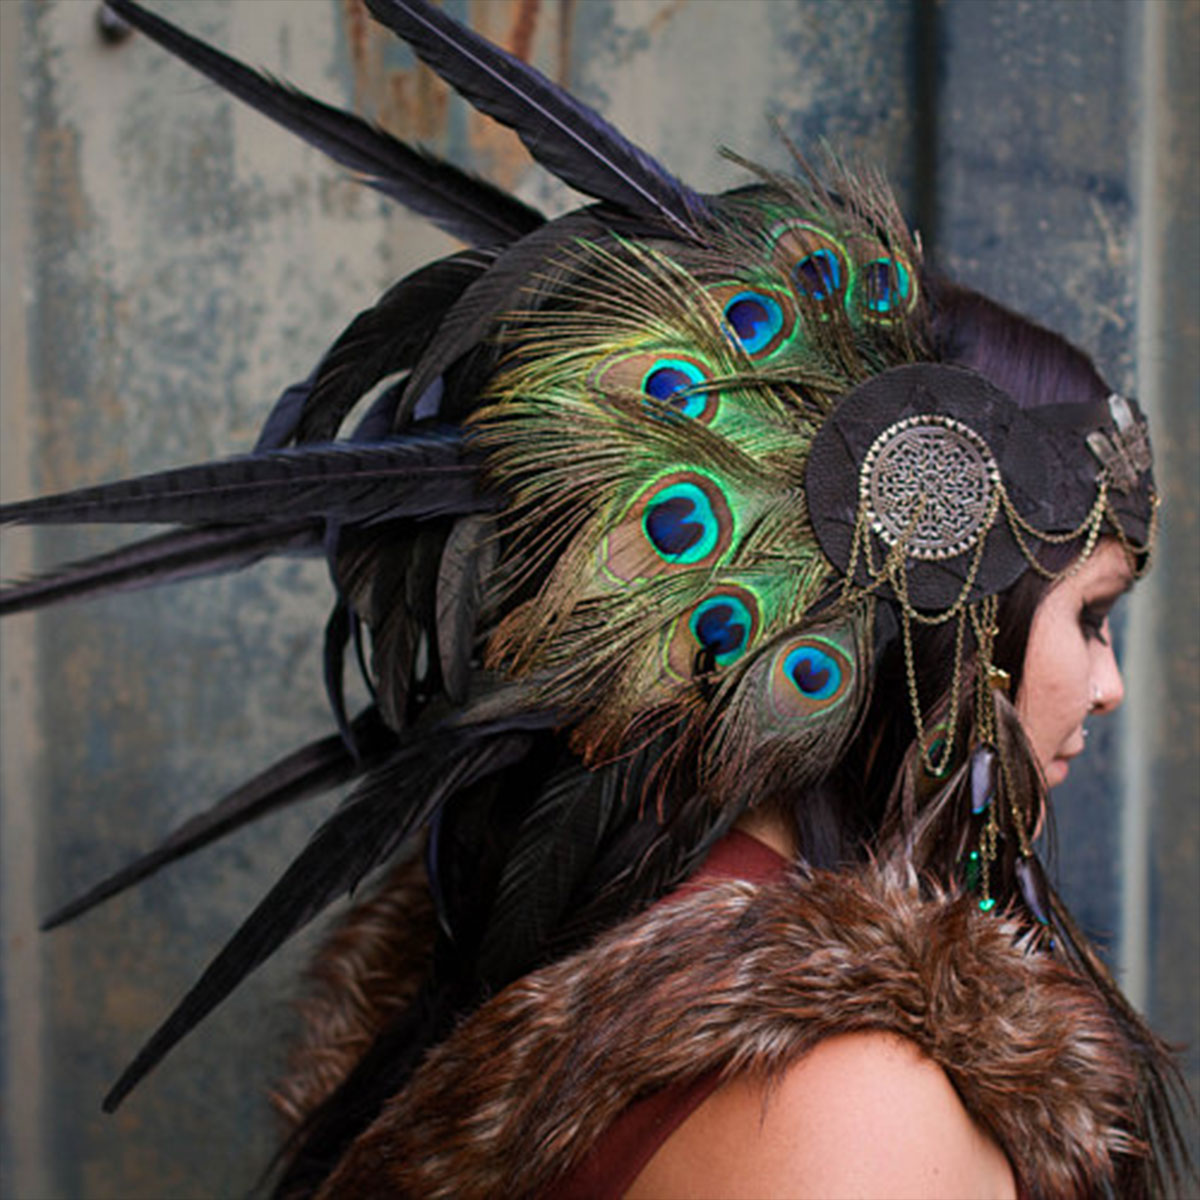 Bless is More - Your one stop empowerment shop for the gods and goddesses of all walks of life. We specialize in handcrafted leather headpieces, jewelry and sacred ceremonial tools for your personal magick and medicine rituals.HEXENFEST SPONSOR